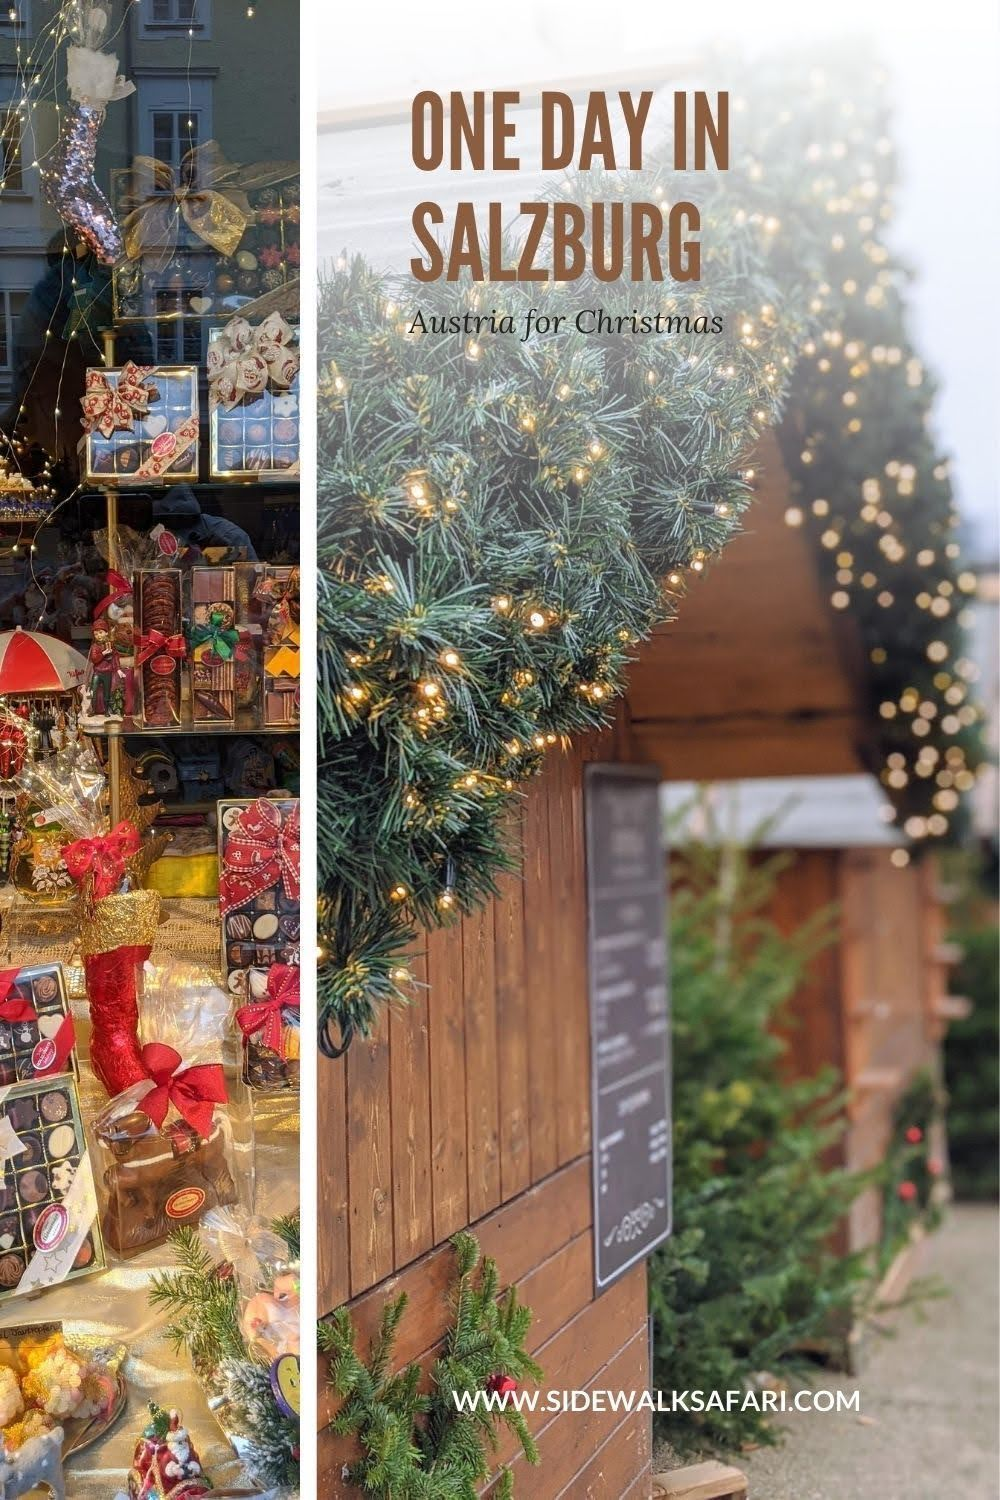 Visit Salzburg Austria For Christmas 2020 How to Spend One Day in Salzburg in Winter in 2020 | Christmas